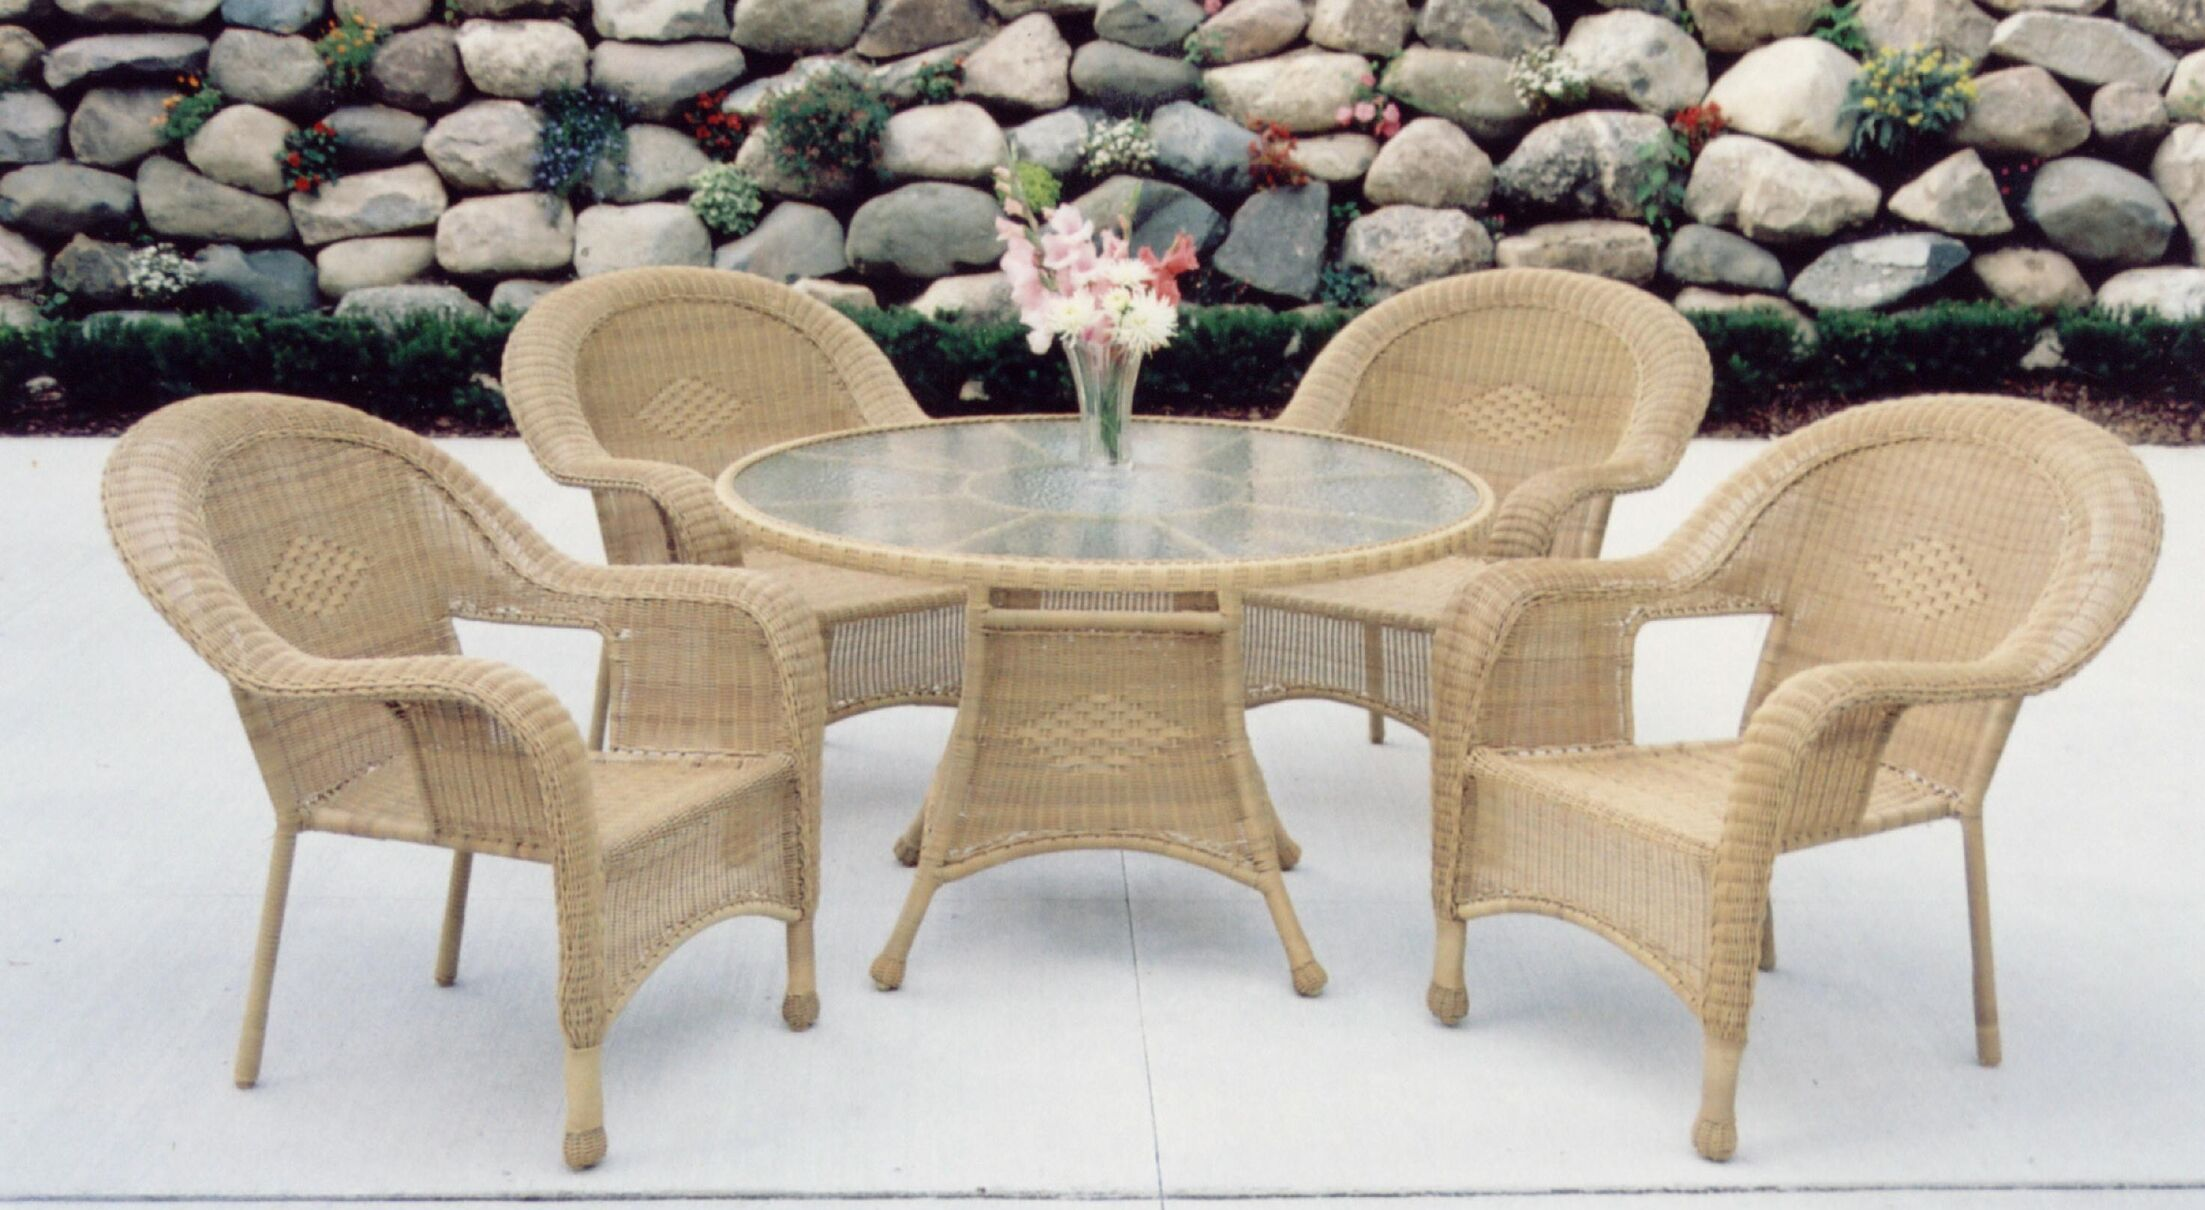 Kingsmill 5 Piece Wicker/Rattan Dining Set Finish: Natural